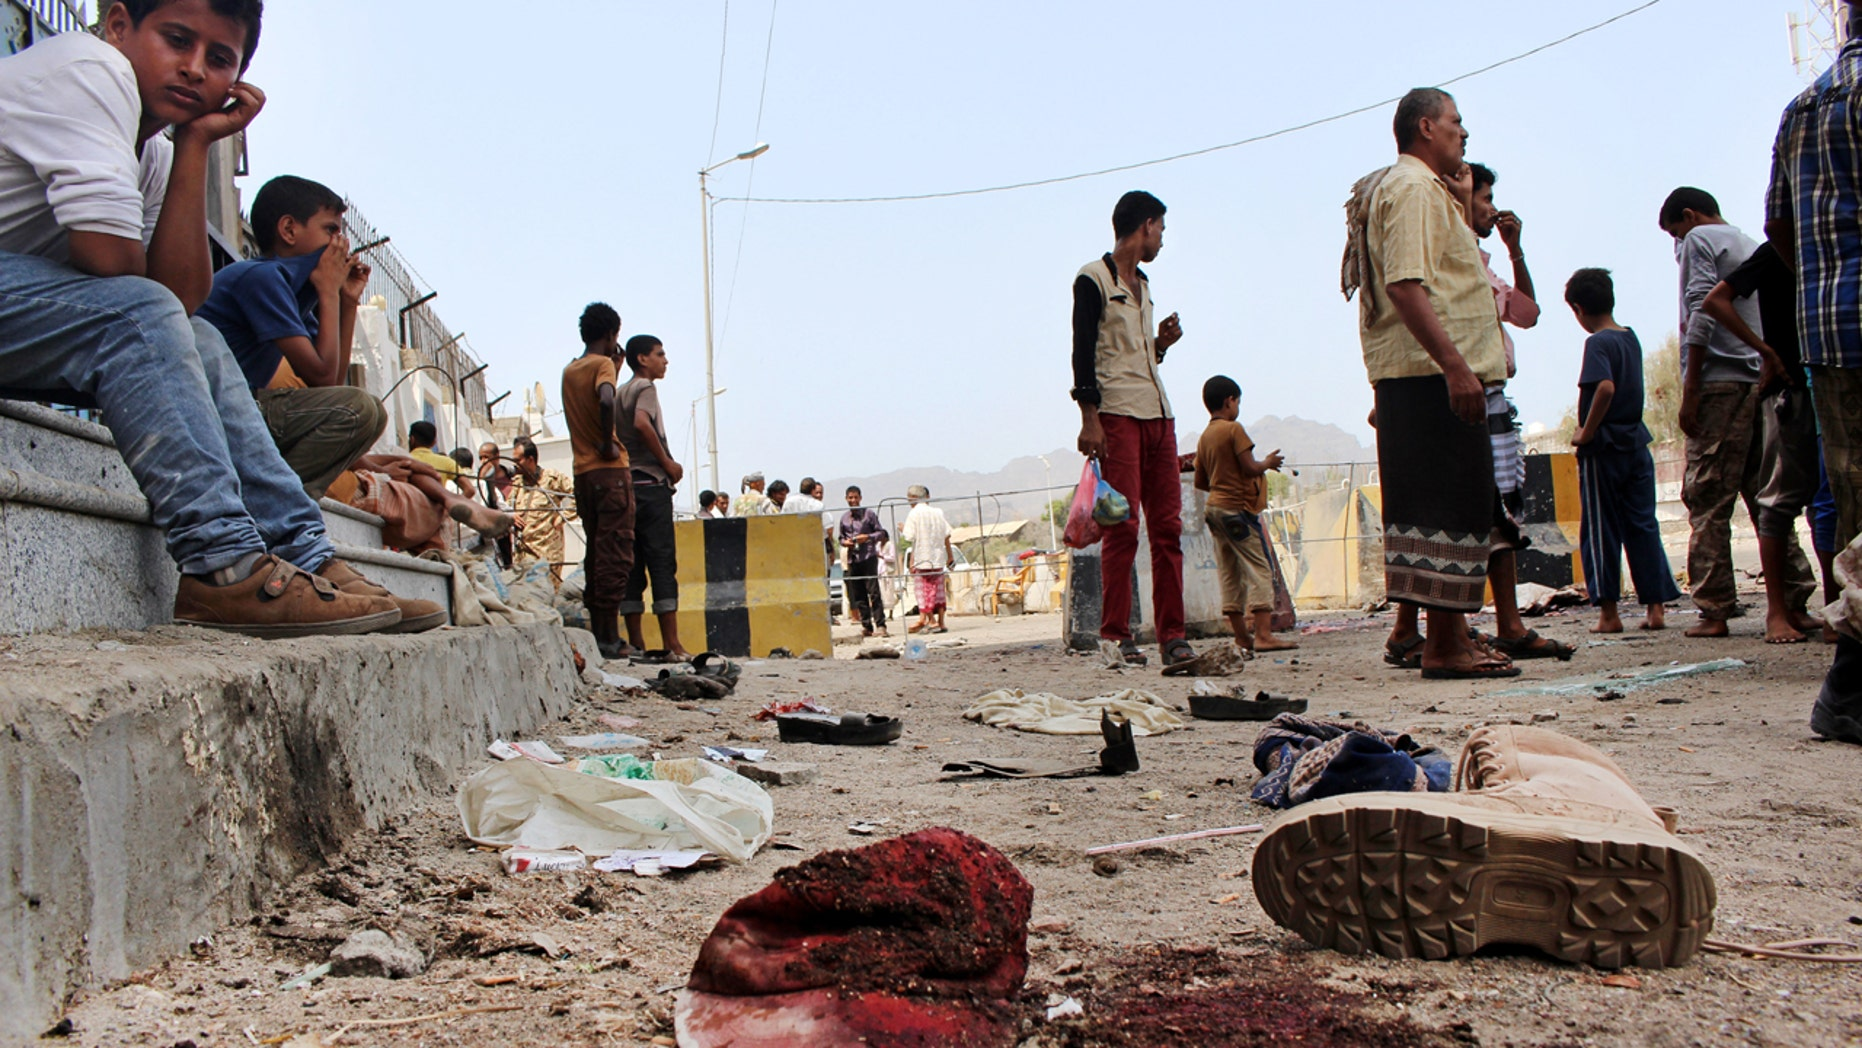 May 23, 2016: People gather at the scene after a pair of suicide bombings attack in the southern city of Aden, Yemen.